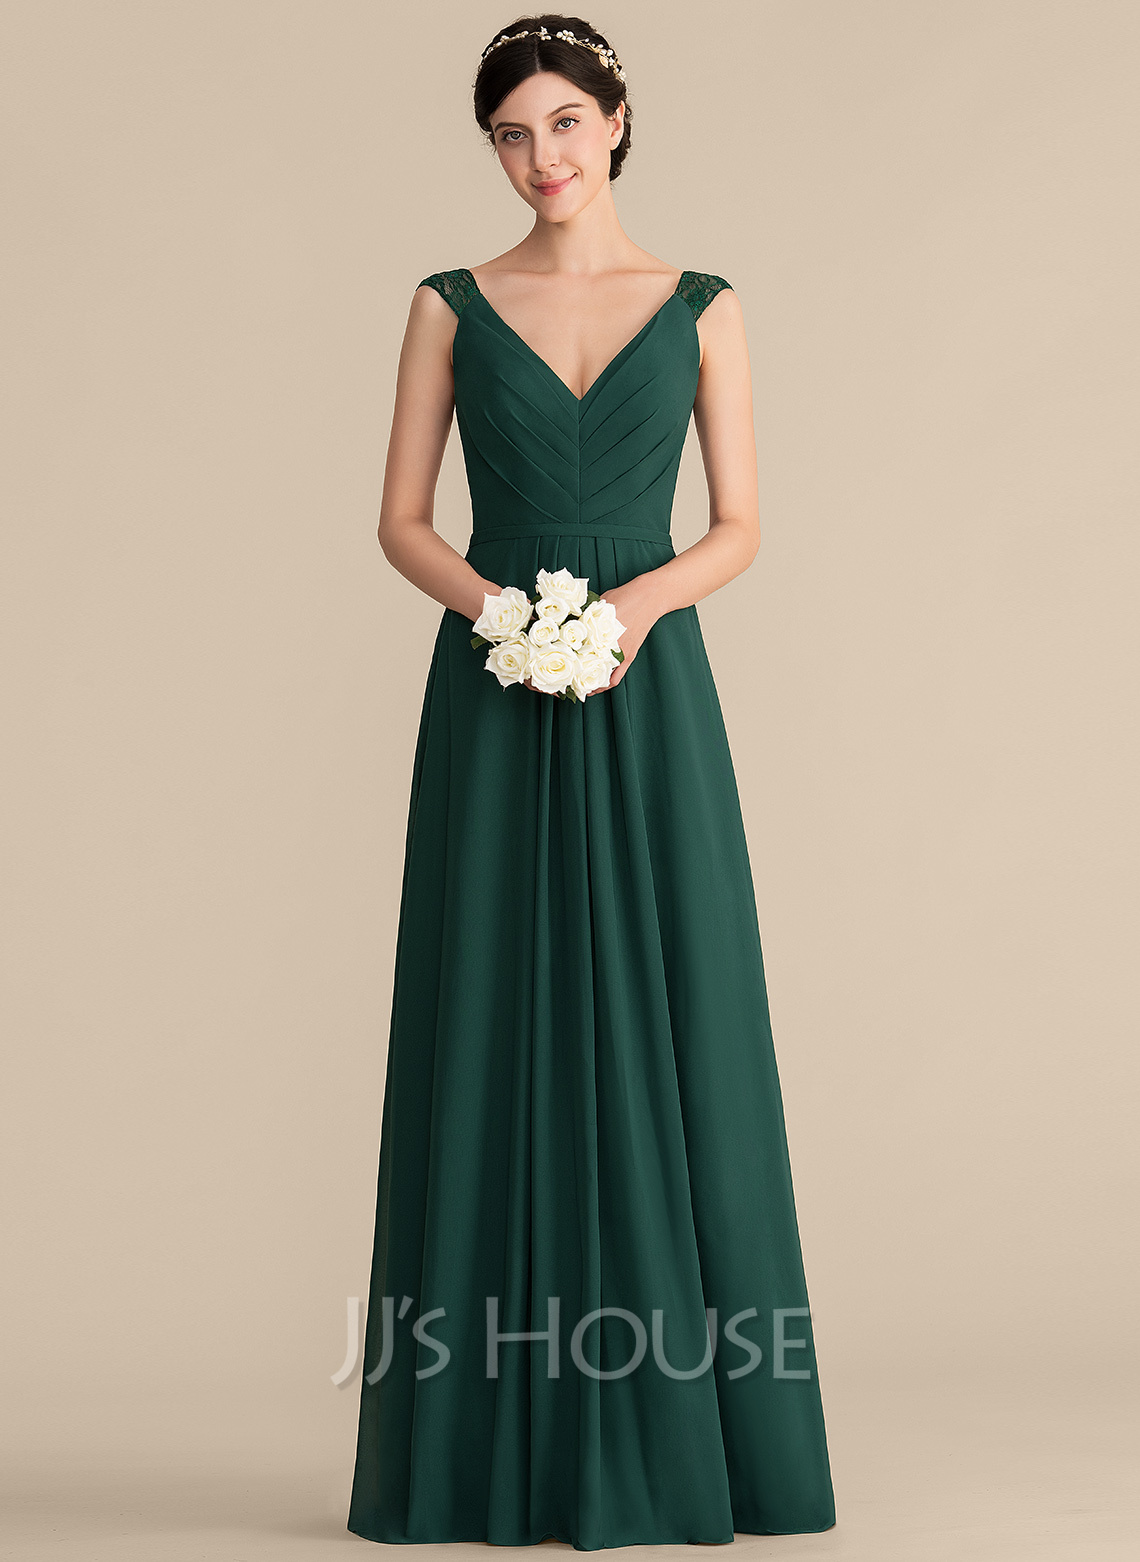 b7991169ed A-Line/Princess V-neck Floor-Length Chiffon Lace Bridesmaid Dress With.  Loading zoom